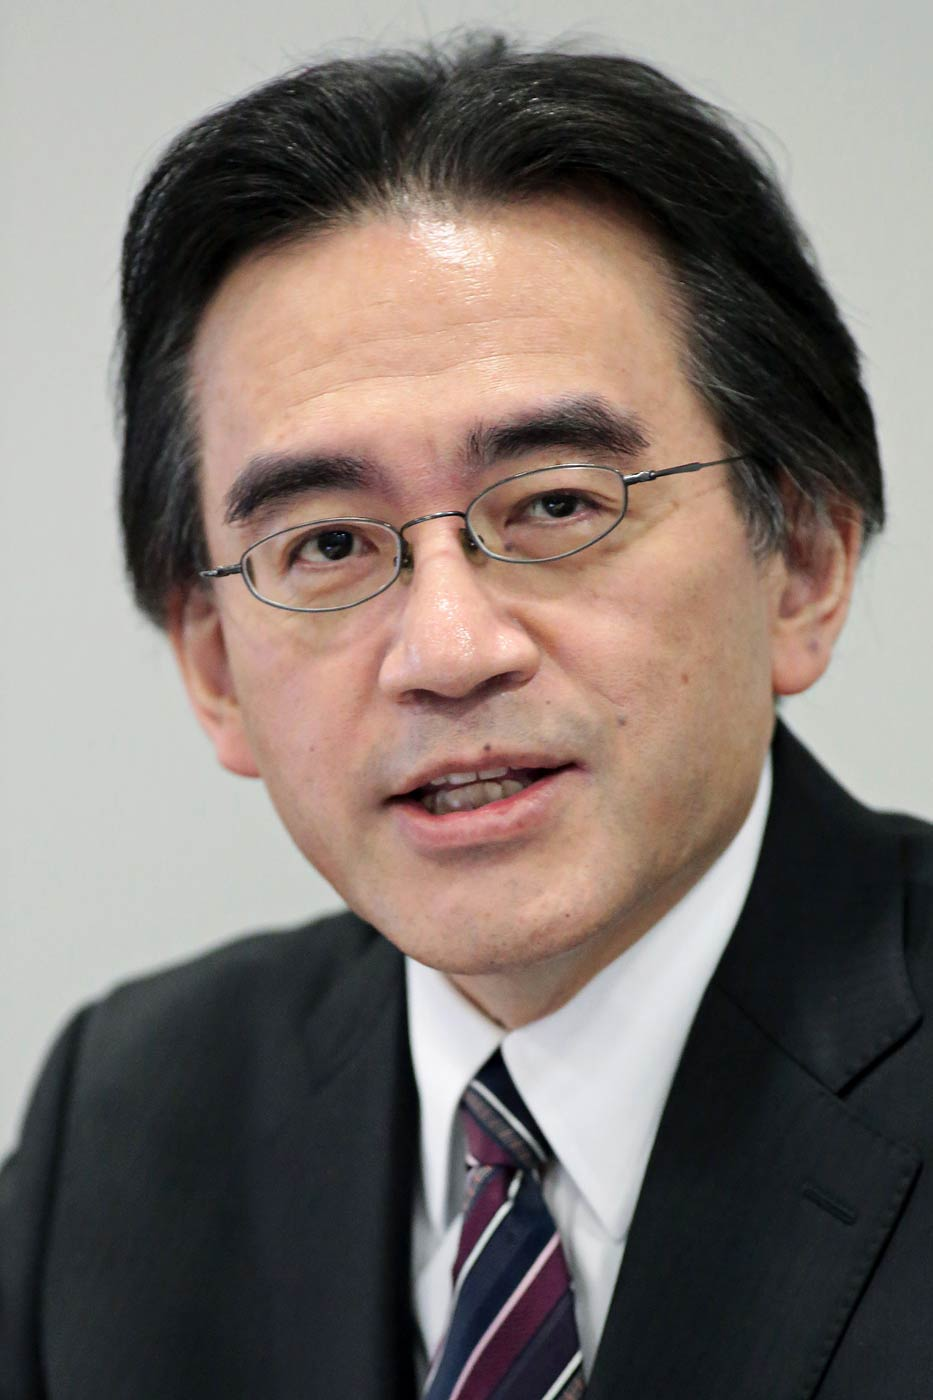 Nintendo President and CEO Satoru Iwata speaks during a news conference in Osaka, Japan, on Oct. 29, 2014.